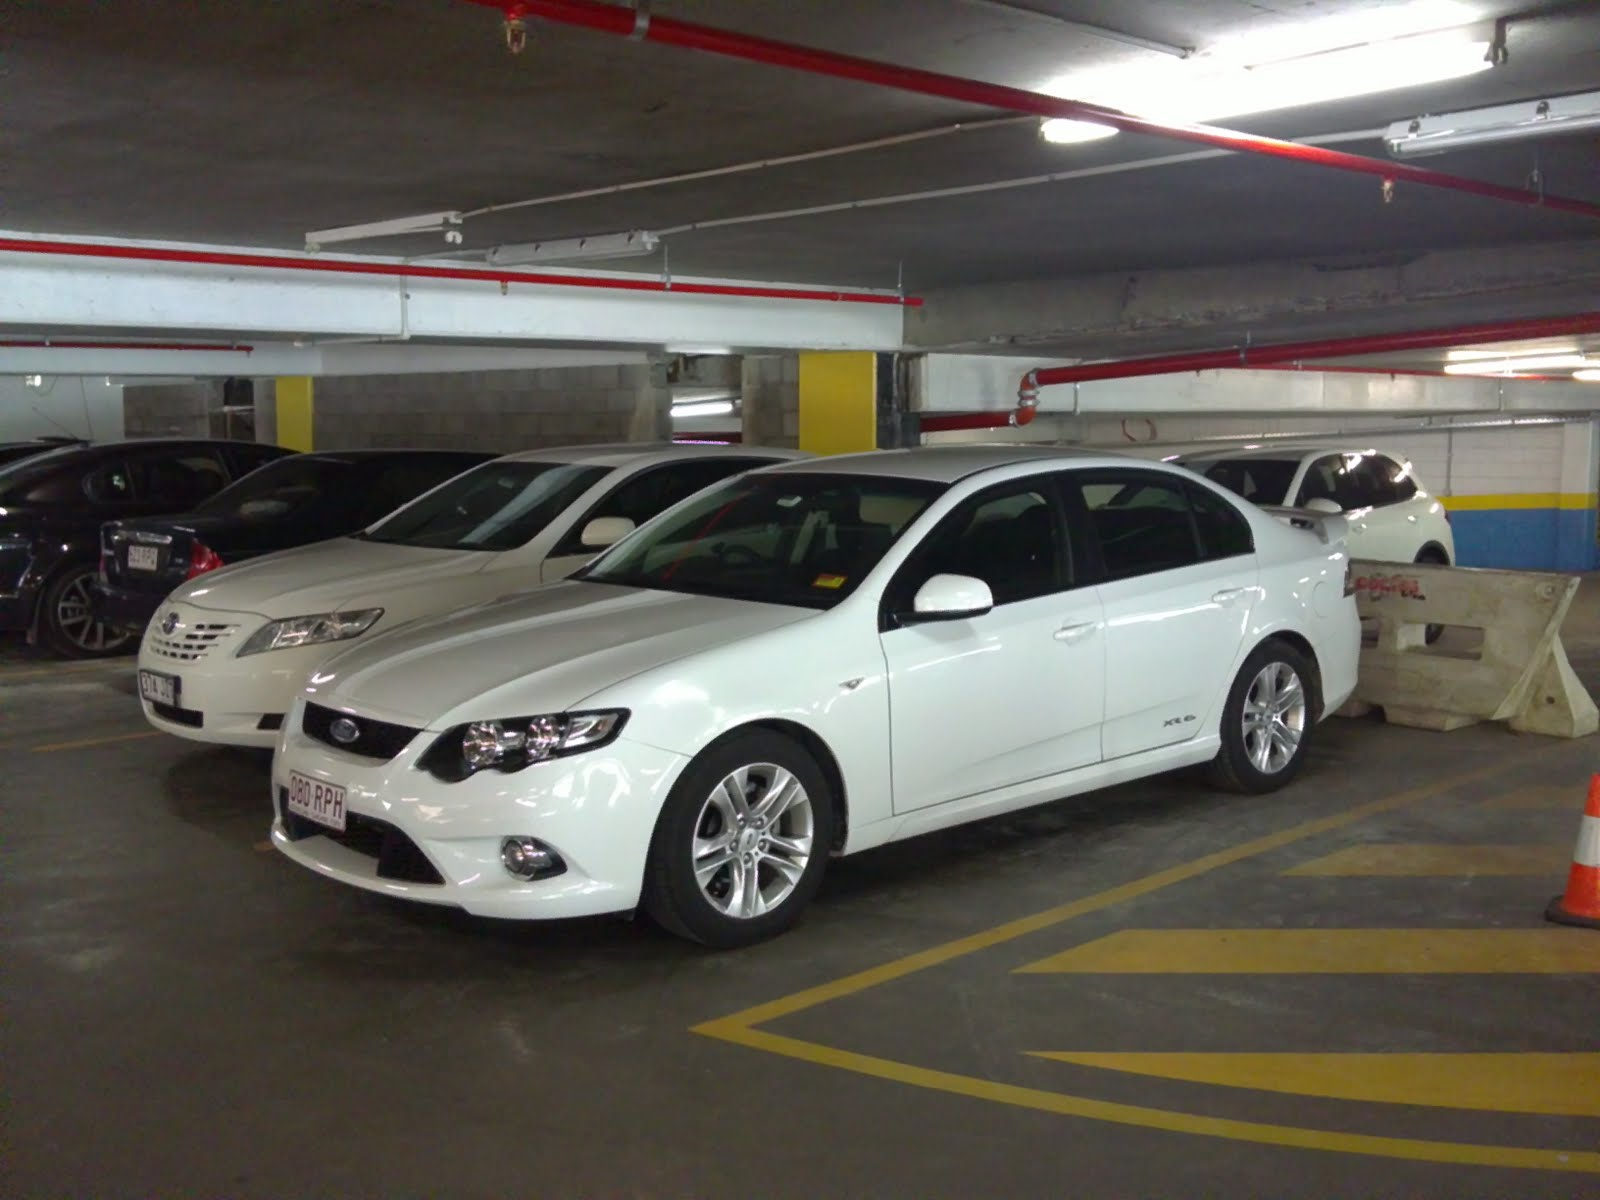 Now renting a car in australia is pretty easy there are tons of websites that link you to car rental companies so that as soon as you arrive